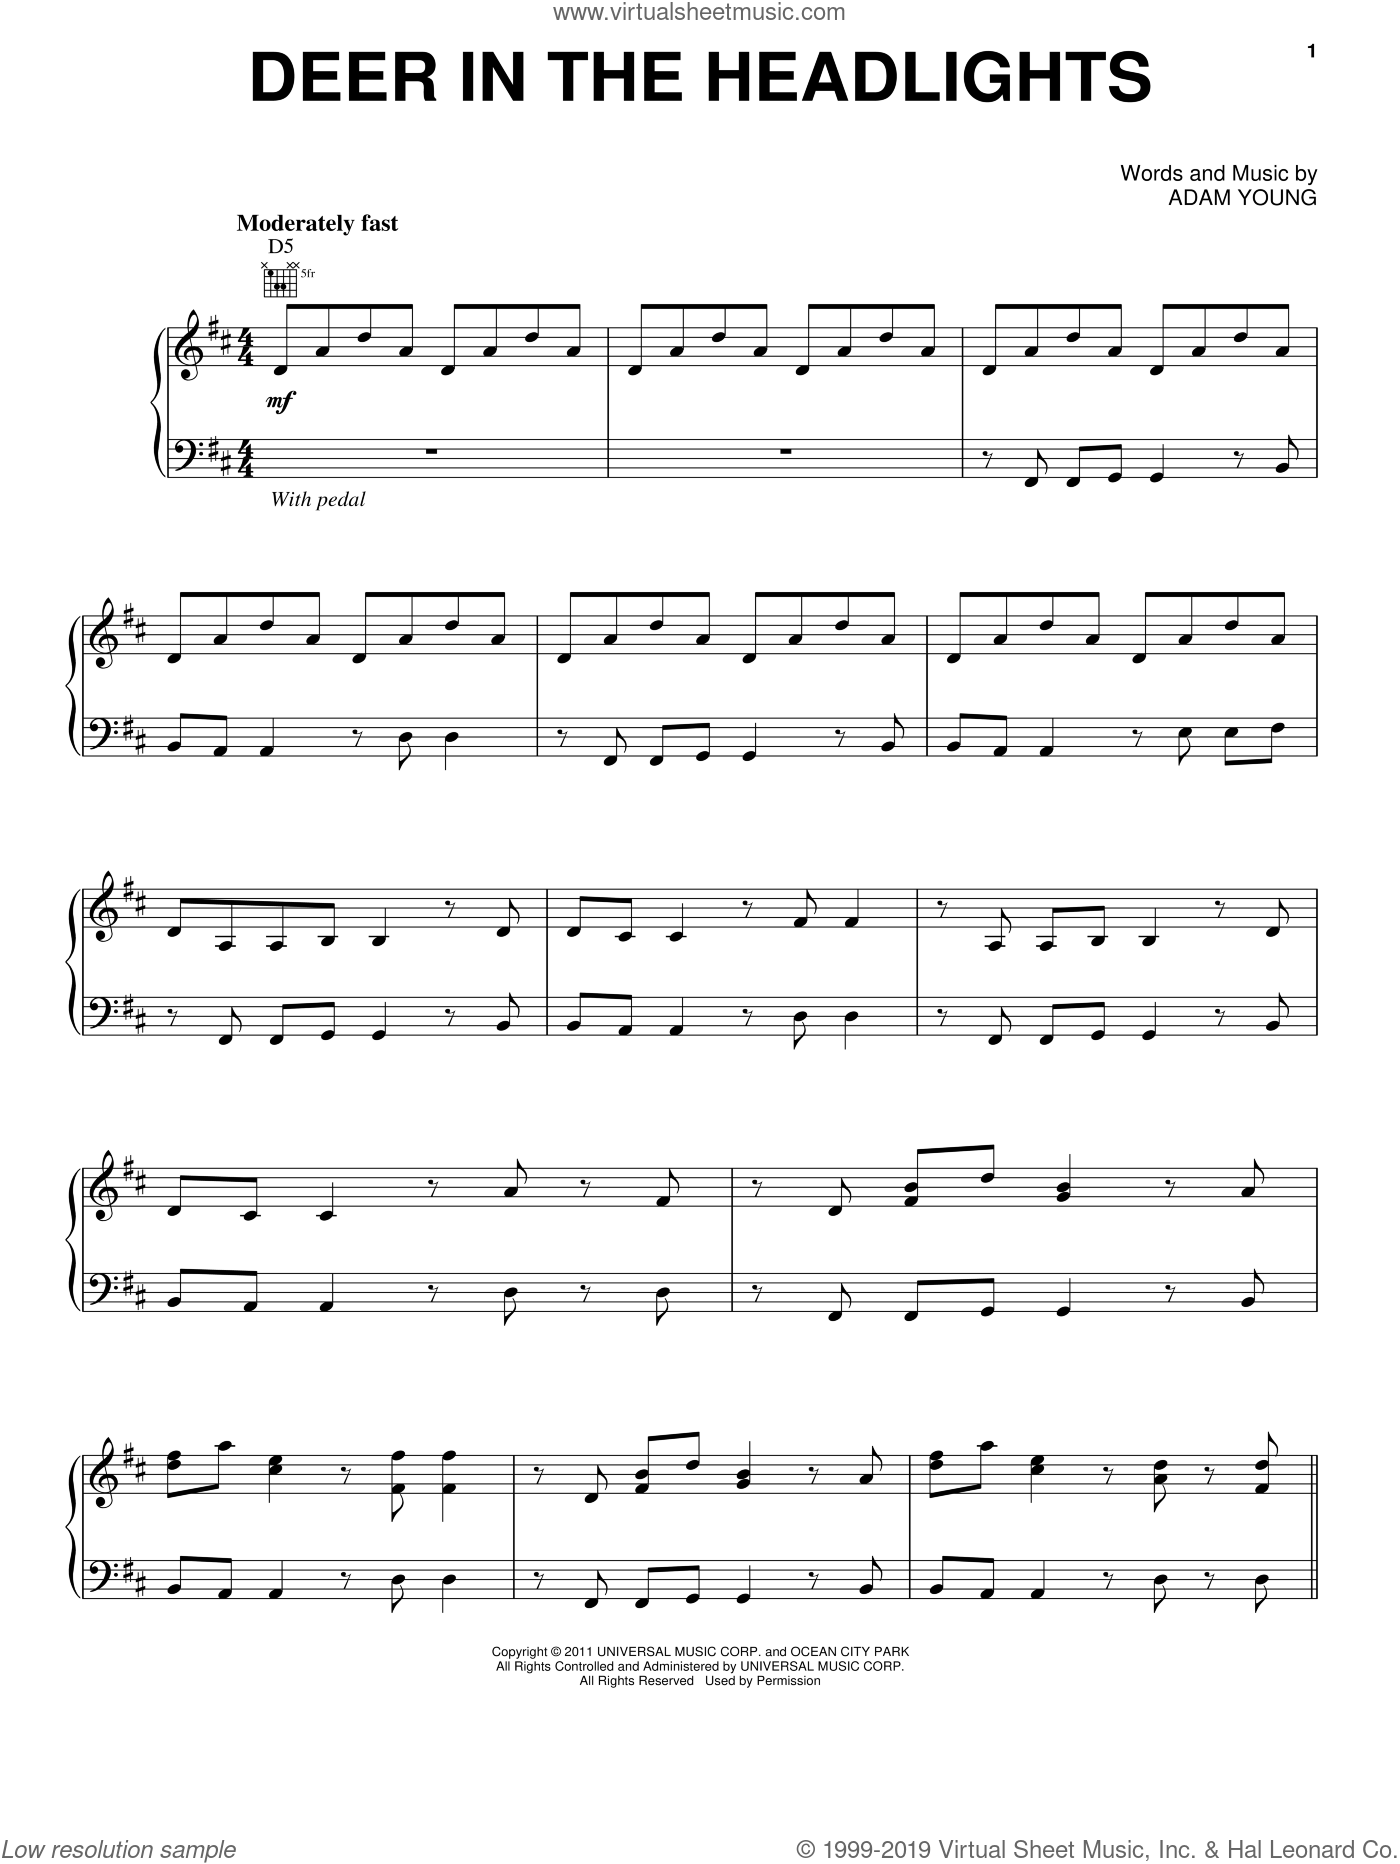 Deer In The Headlights sheet music for voice, piano or guitar by Adam Young and Owl City. Score Image Preview.